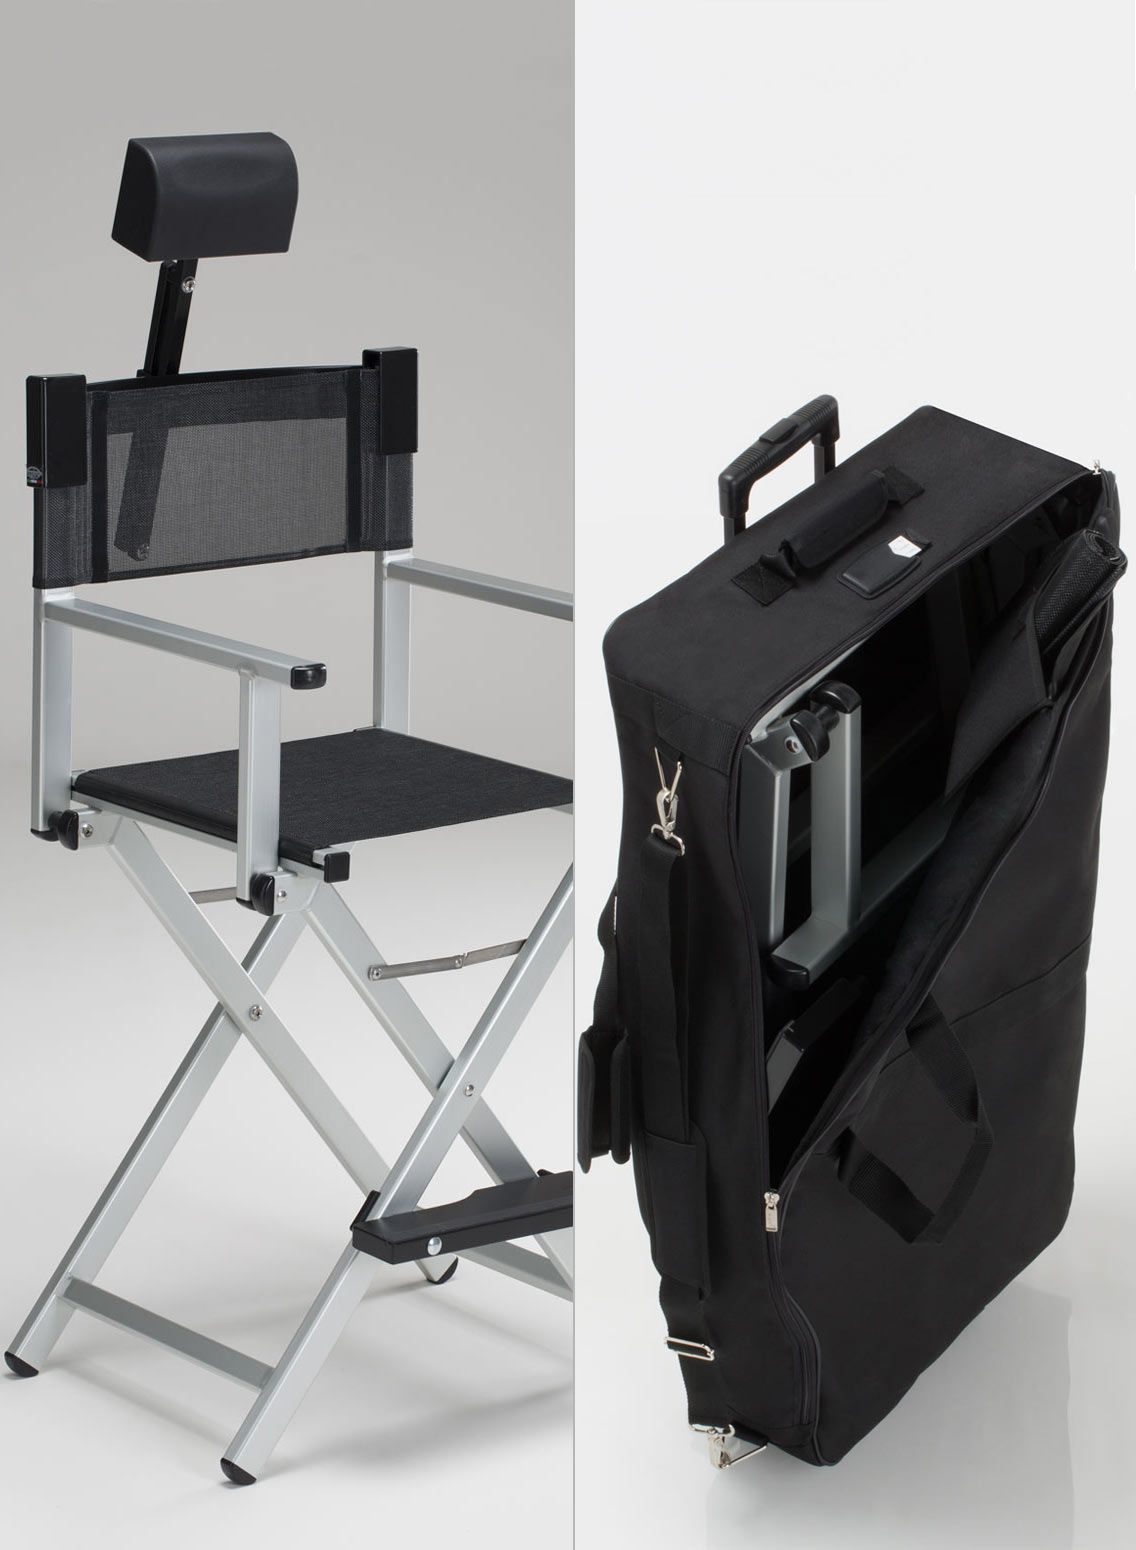 Make Up Studio Chairs Aluminum Makeup Chair Set With Headrest And Trolley Bag